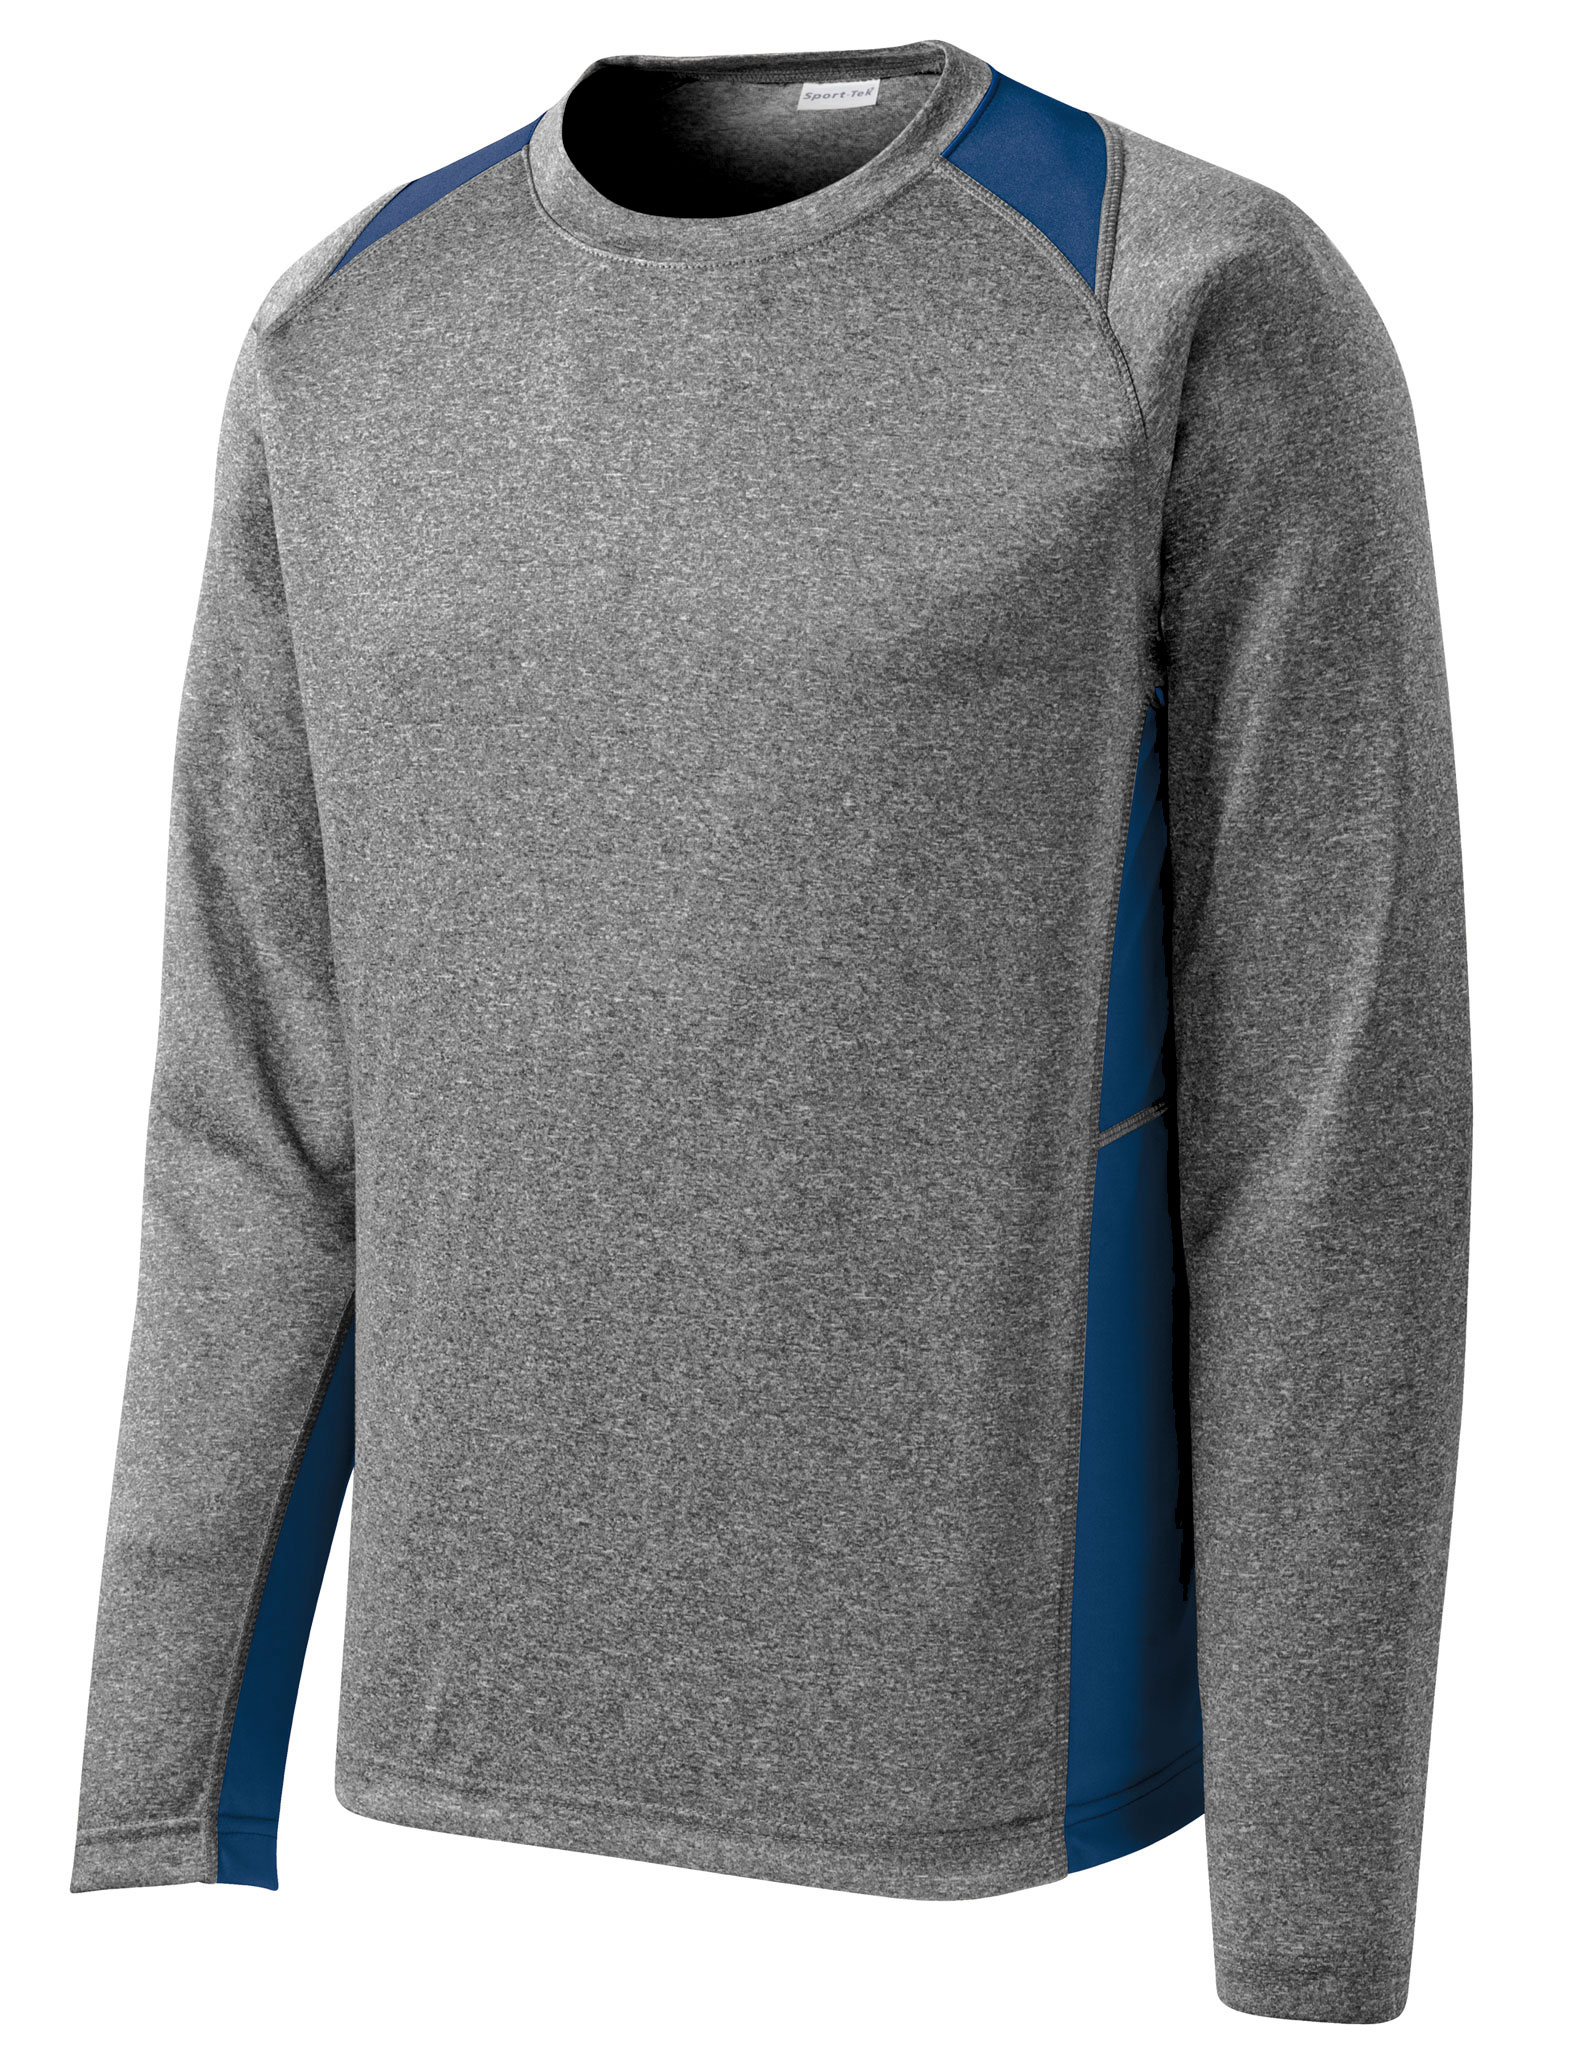 Long Sleeve Heather Colorblock Contender™ Tee